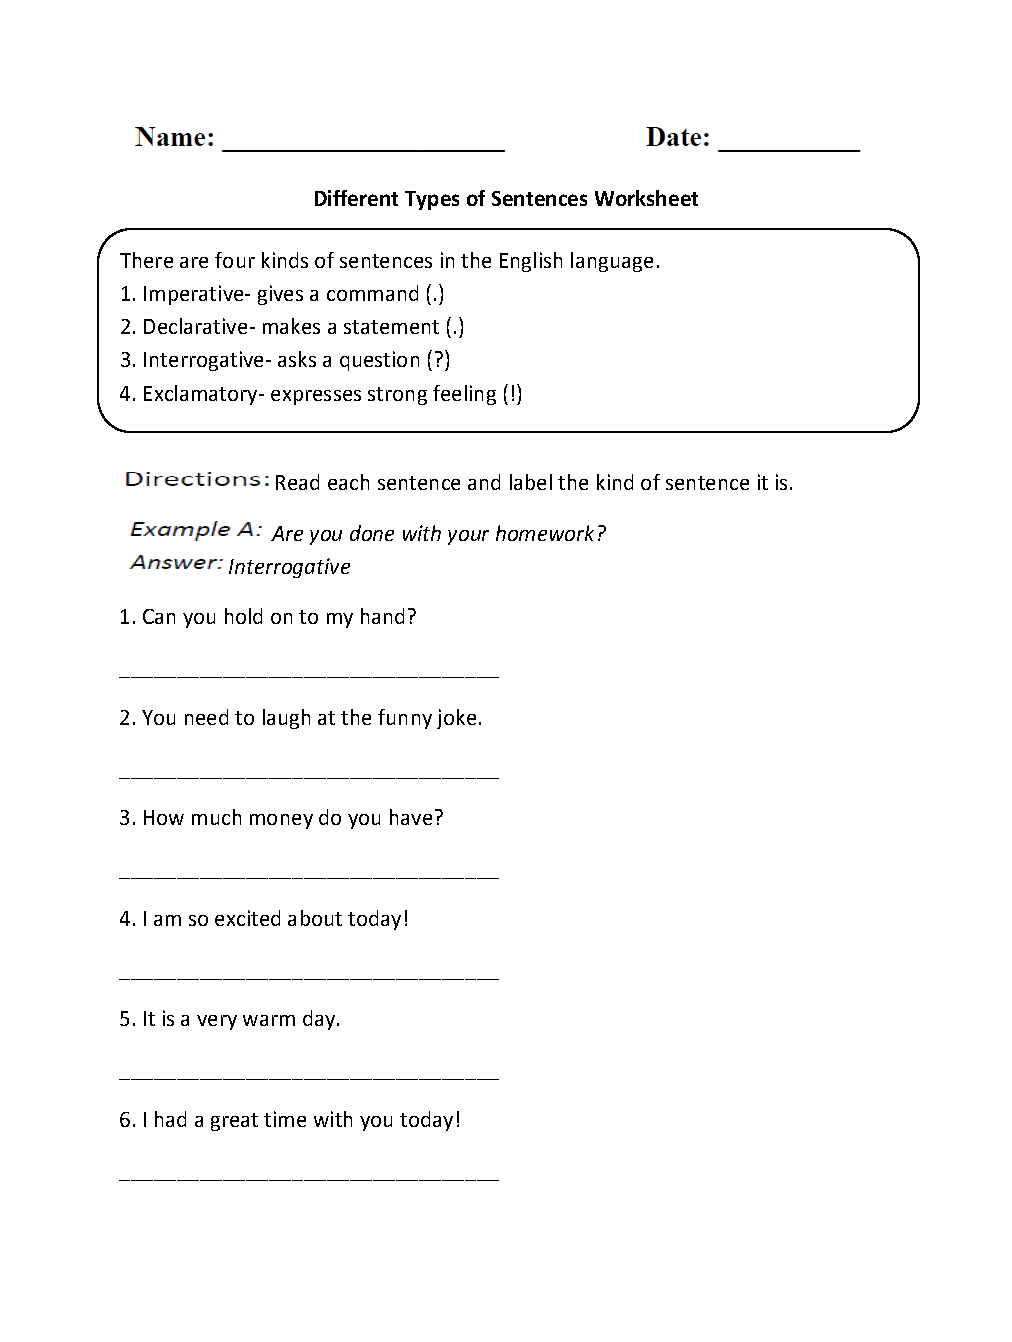 Worksheets Four Kinds Of Sentences Worksheet sentences worksheets types of different worksheet